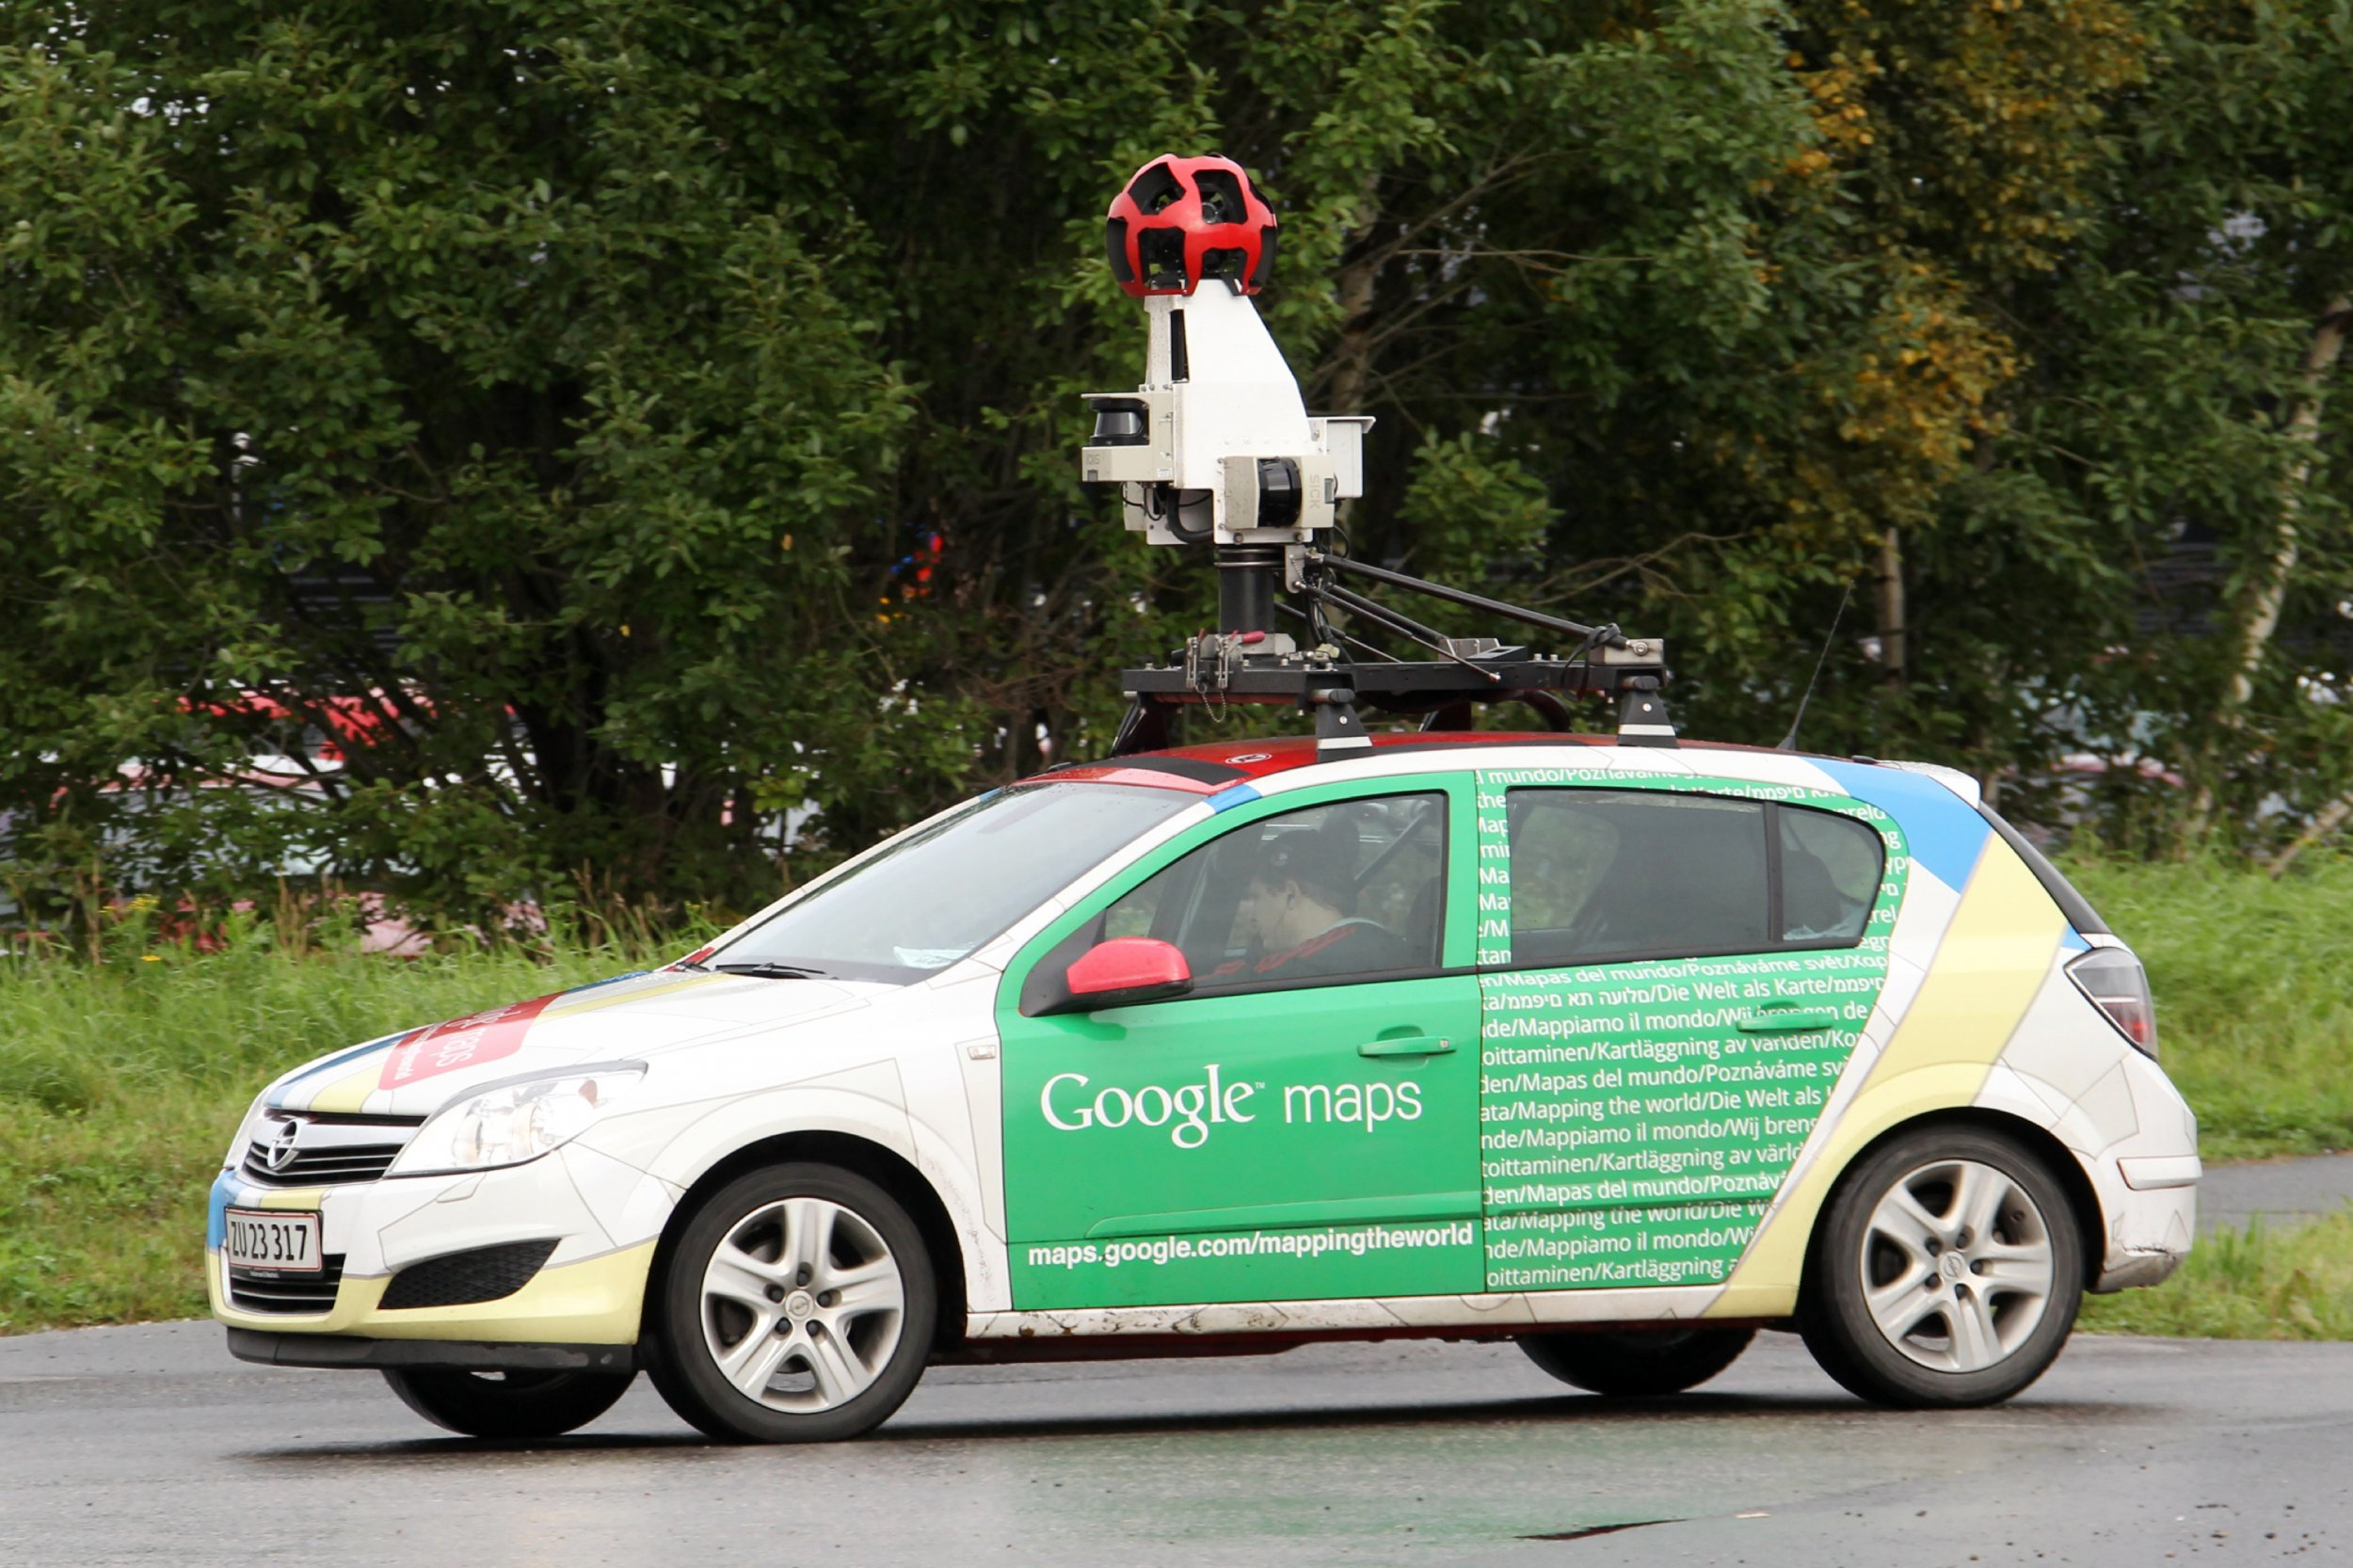 Google Street View Cars Want to Scan Your City for Gas Leaks